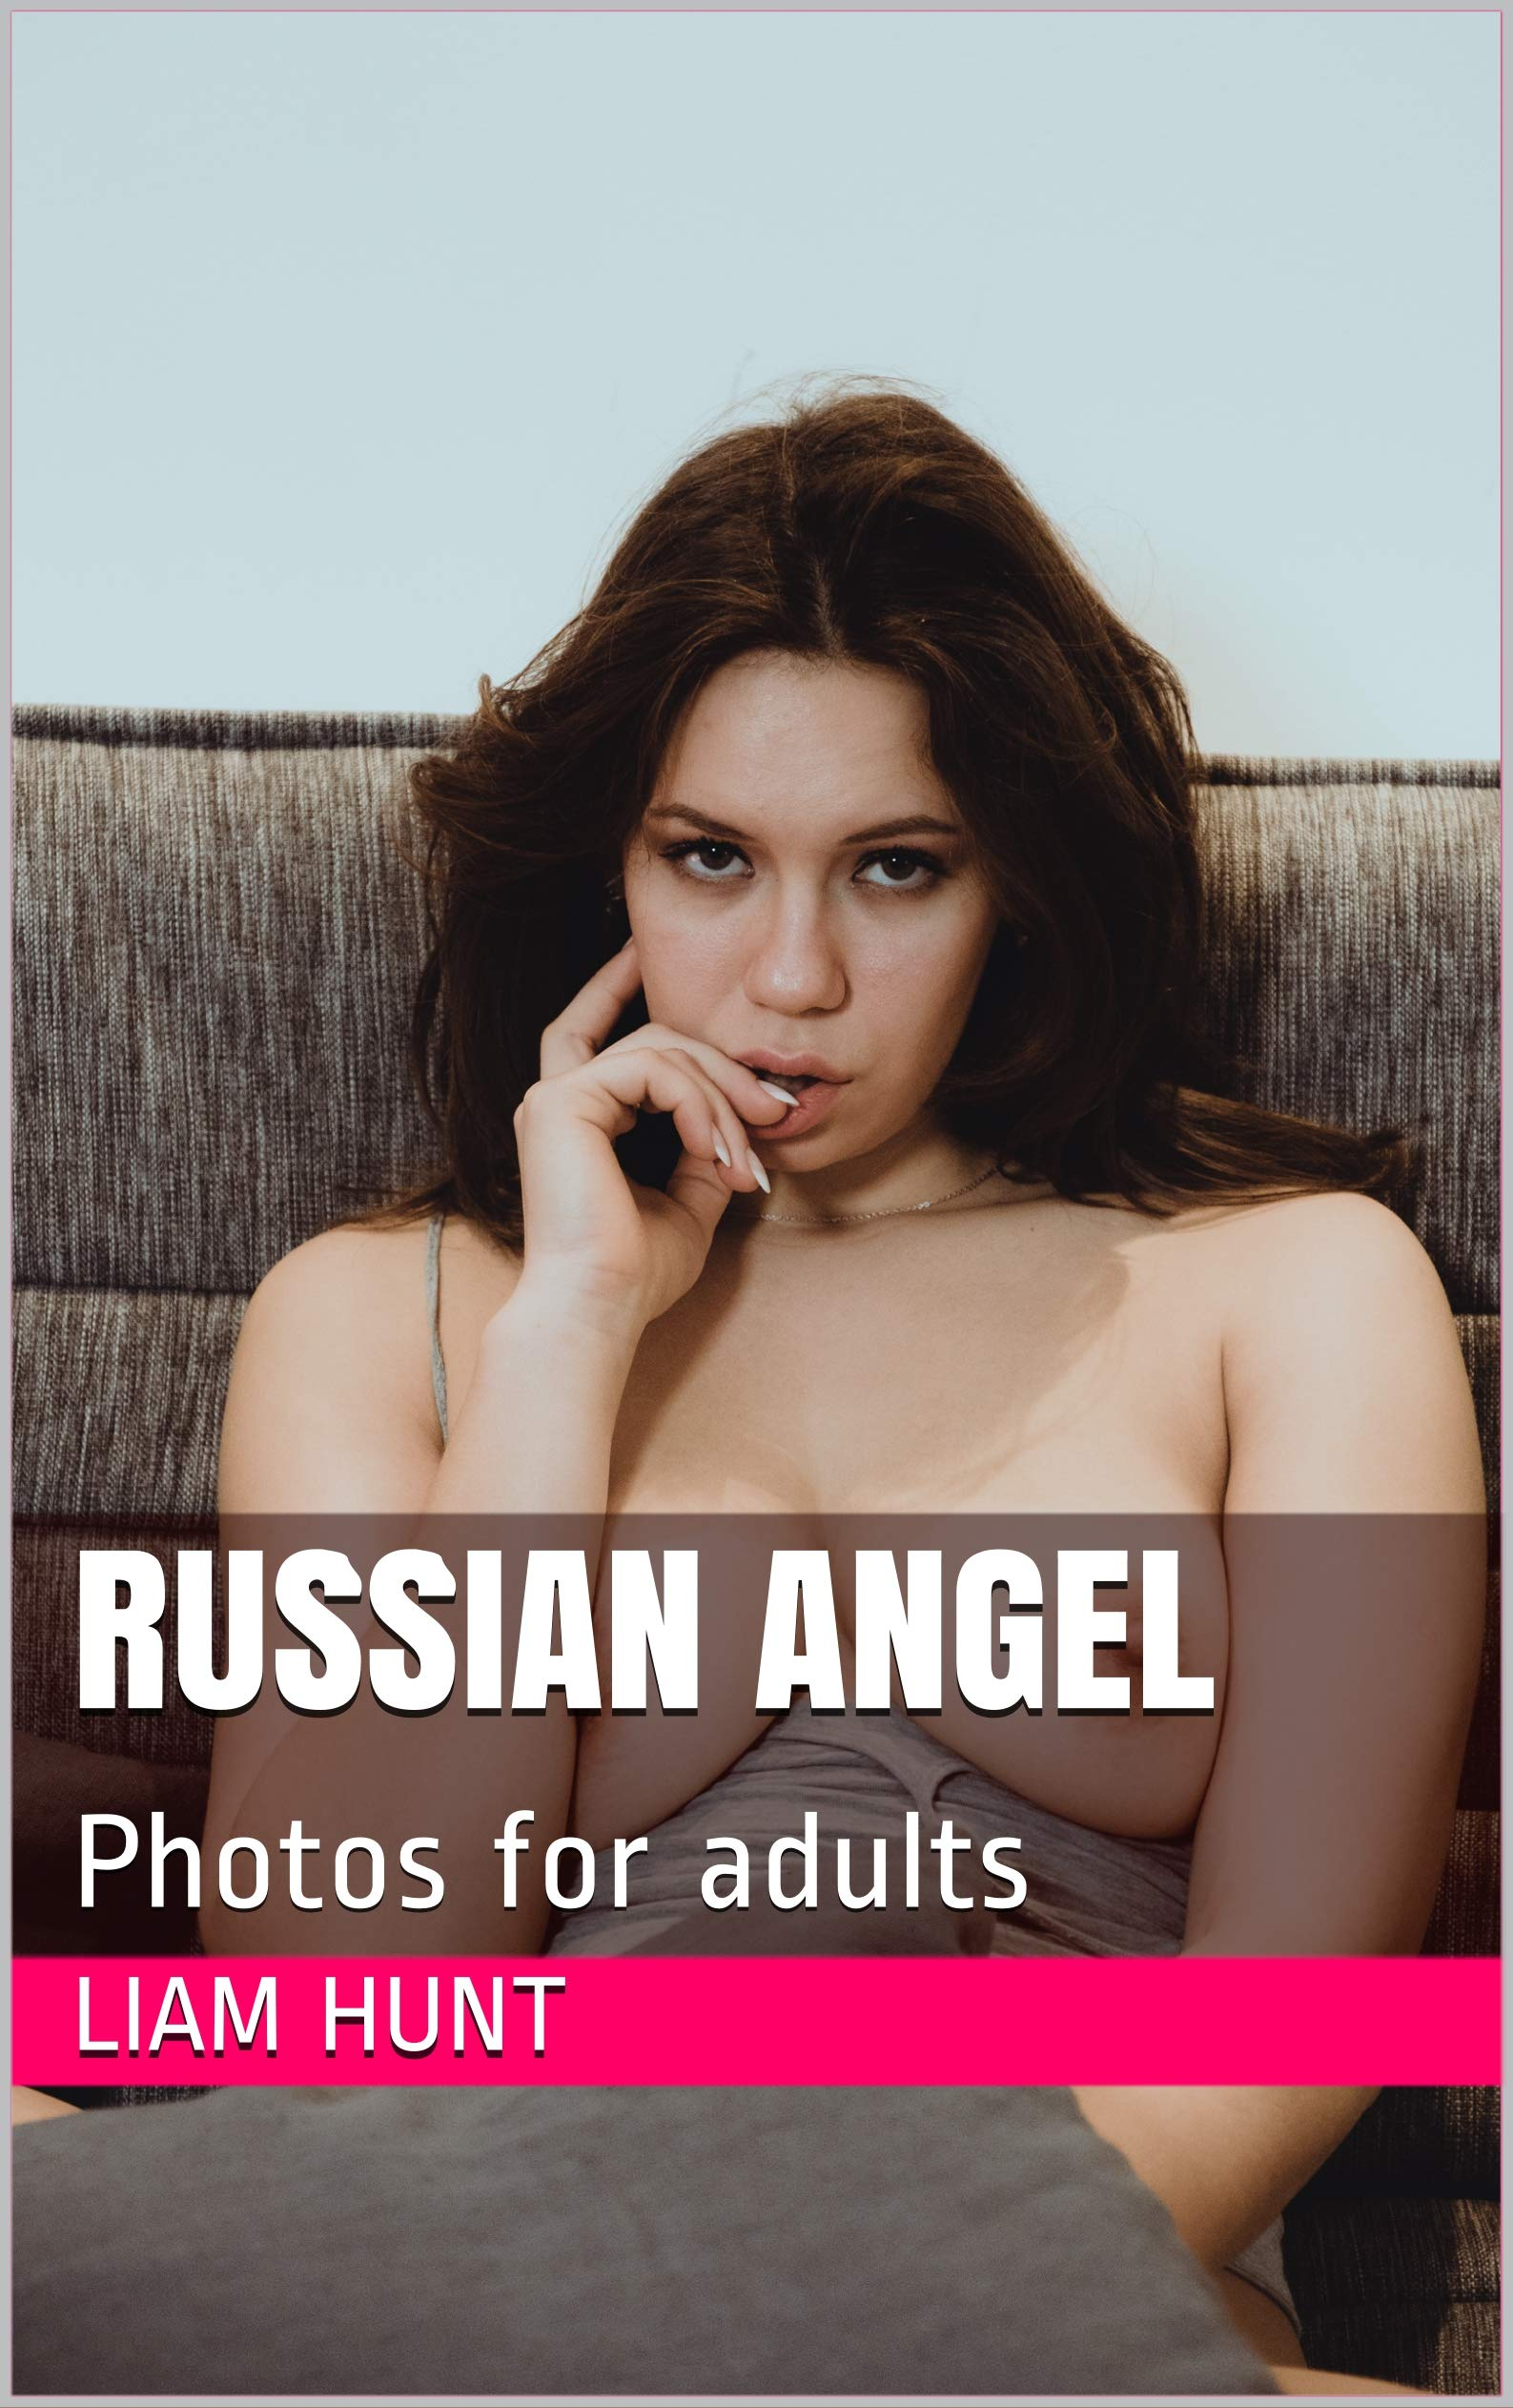 Russian Angel: Photos for adults por Liam Hunt